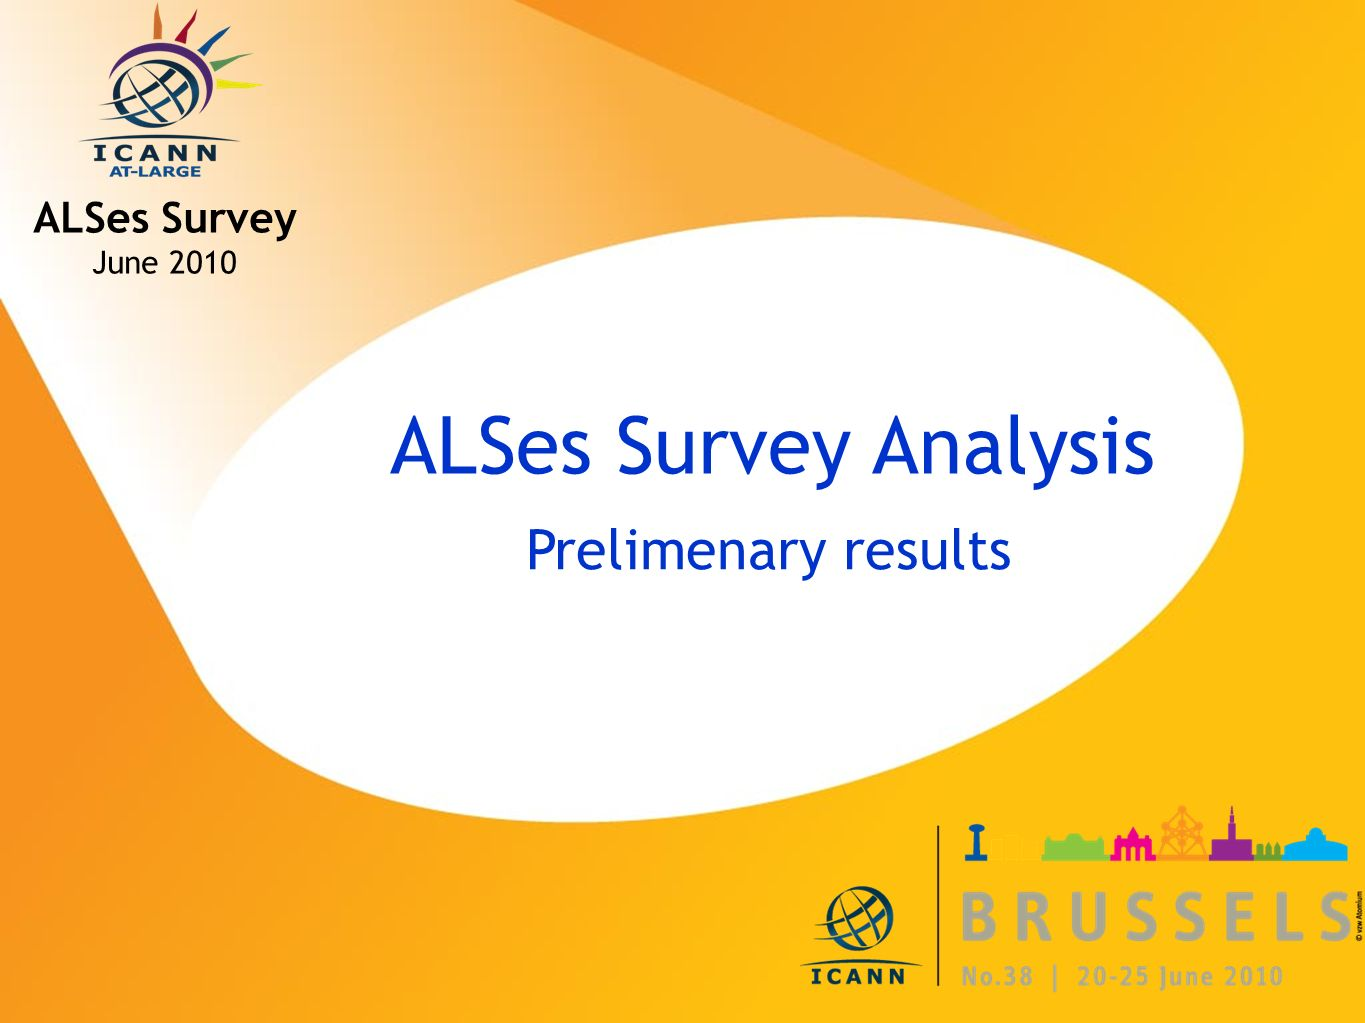 ICANN MEETING NO. 38 | 20-25 JUNE 2010 ALSes Survey Analysis Prelimenary results ALSes Survey June 2010